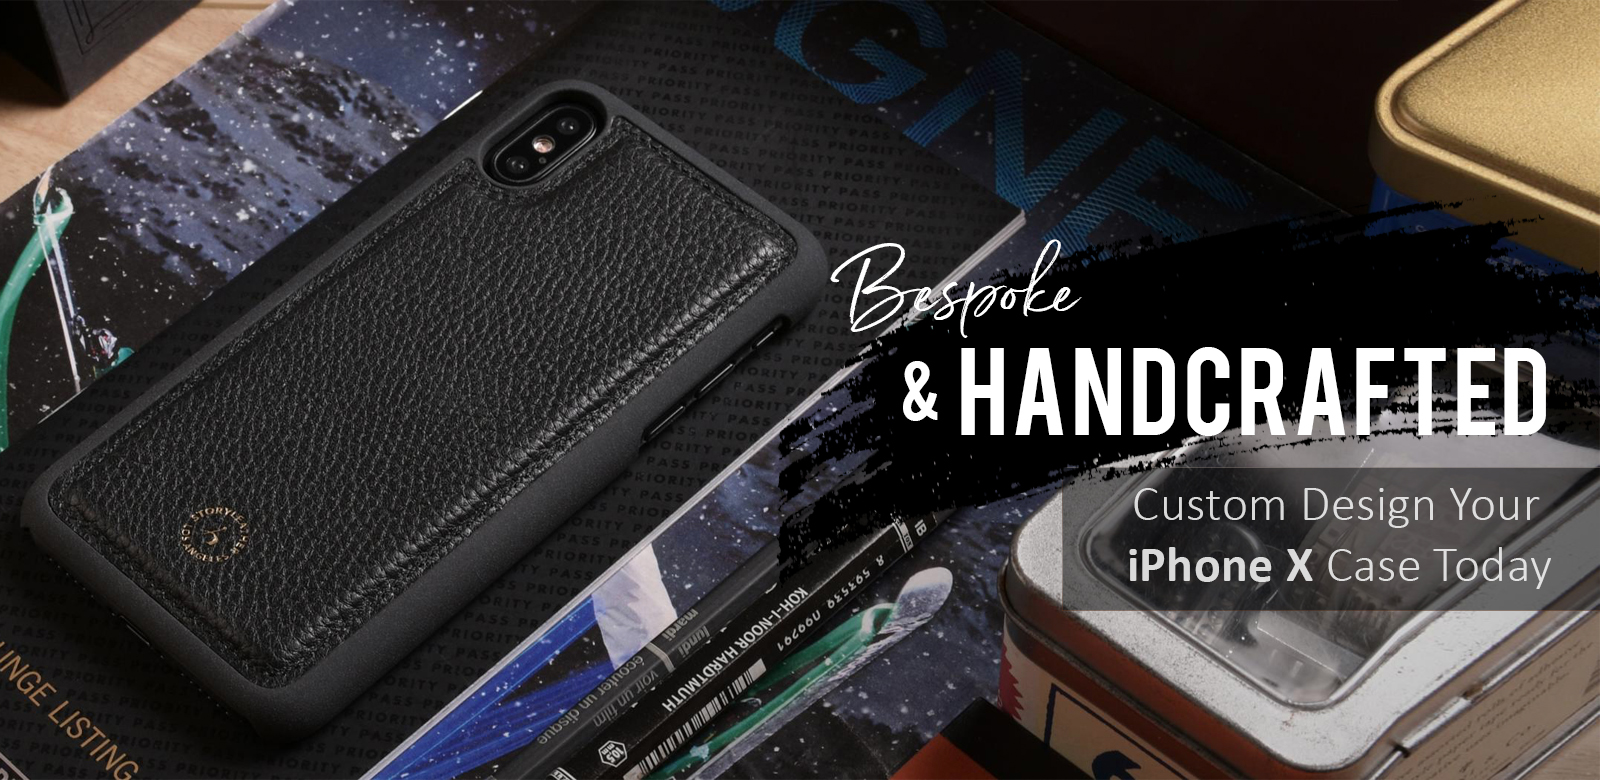 Bespoke and Handcrafted for Apple iPhone X - Custom Design Yours Now